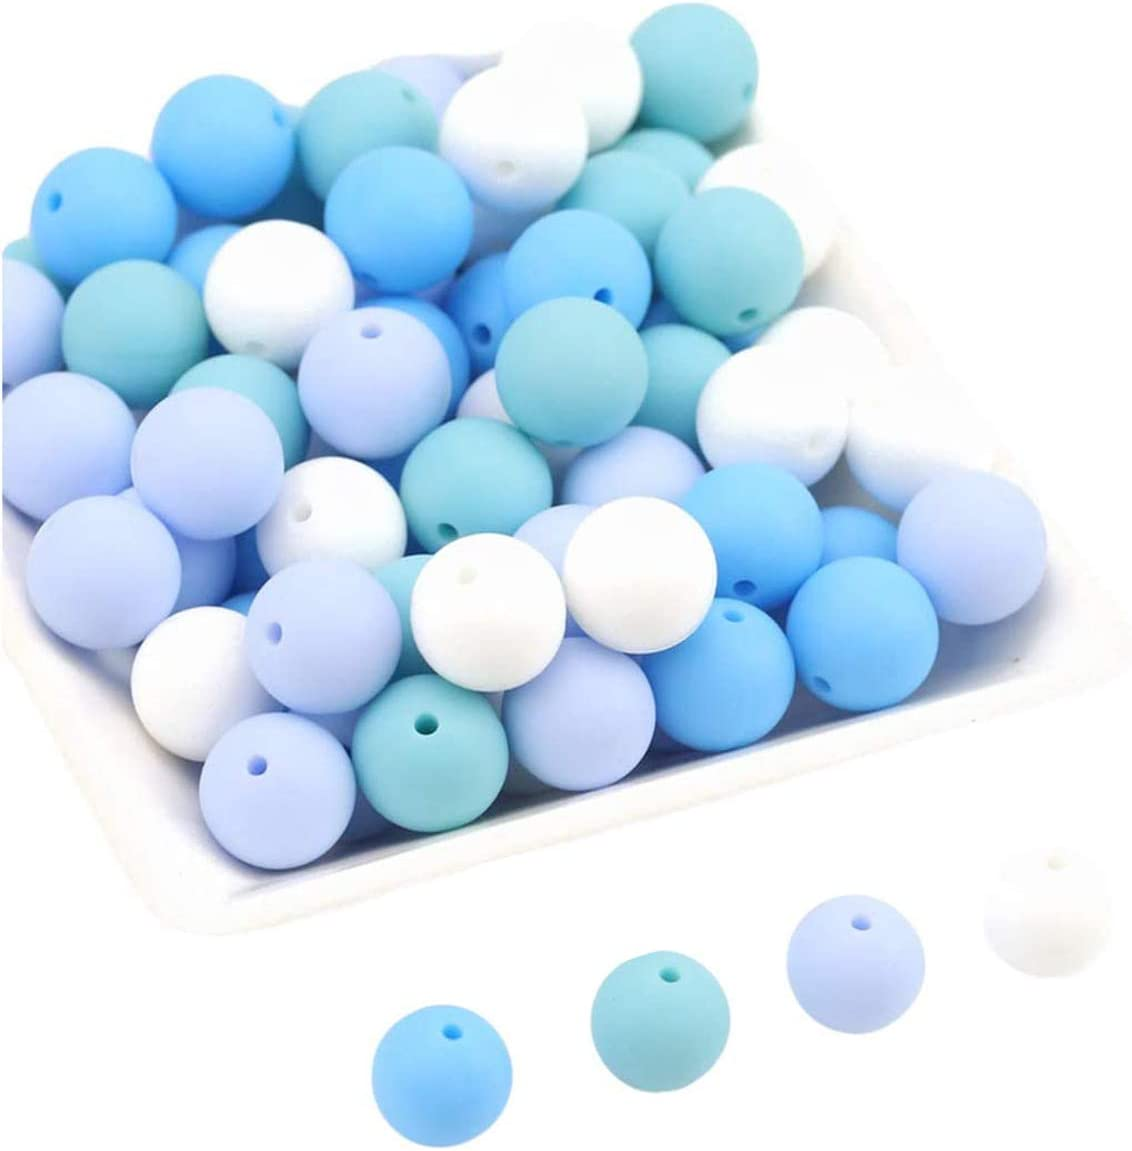 Promise Easy-to-use Babe Silicone Beads New York Mall 100pc 12mm DIY Jewelry Brac Necklace